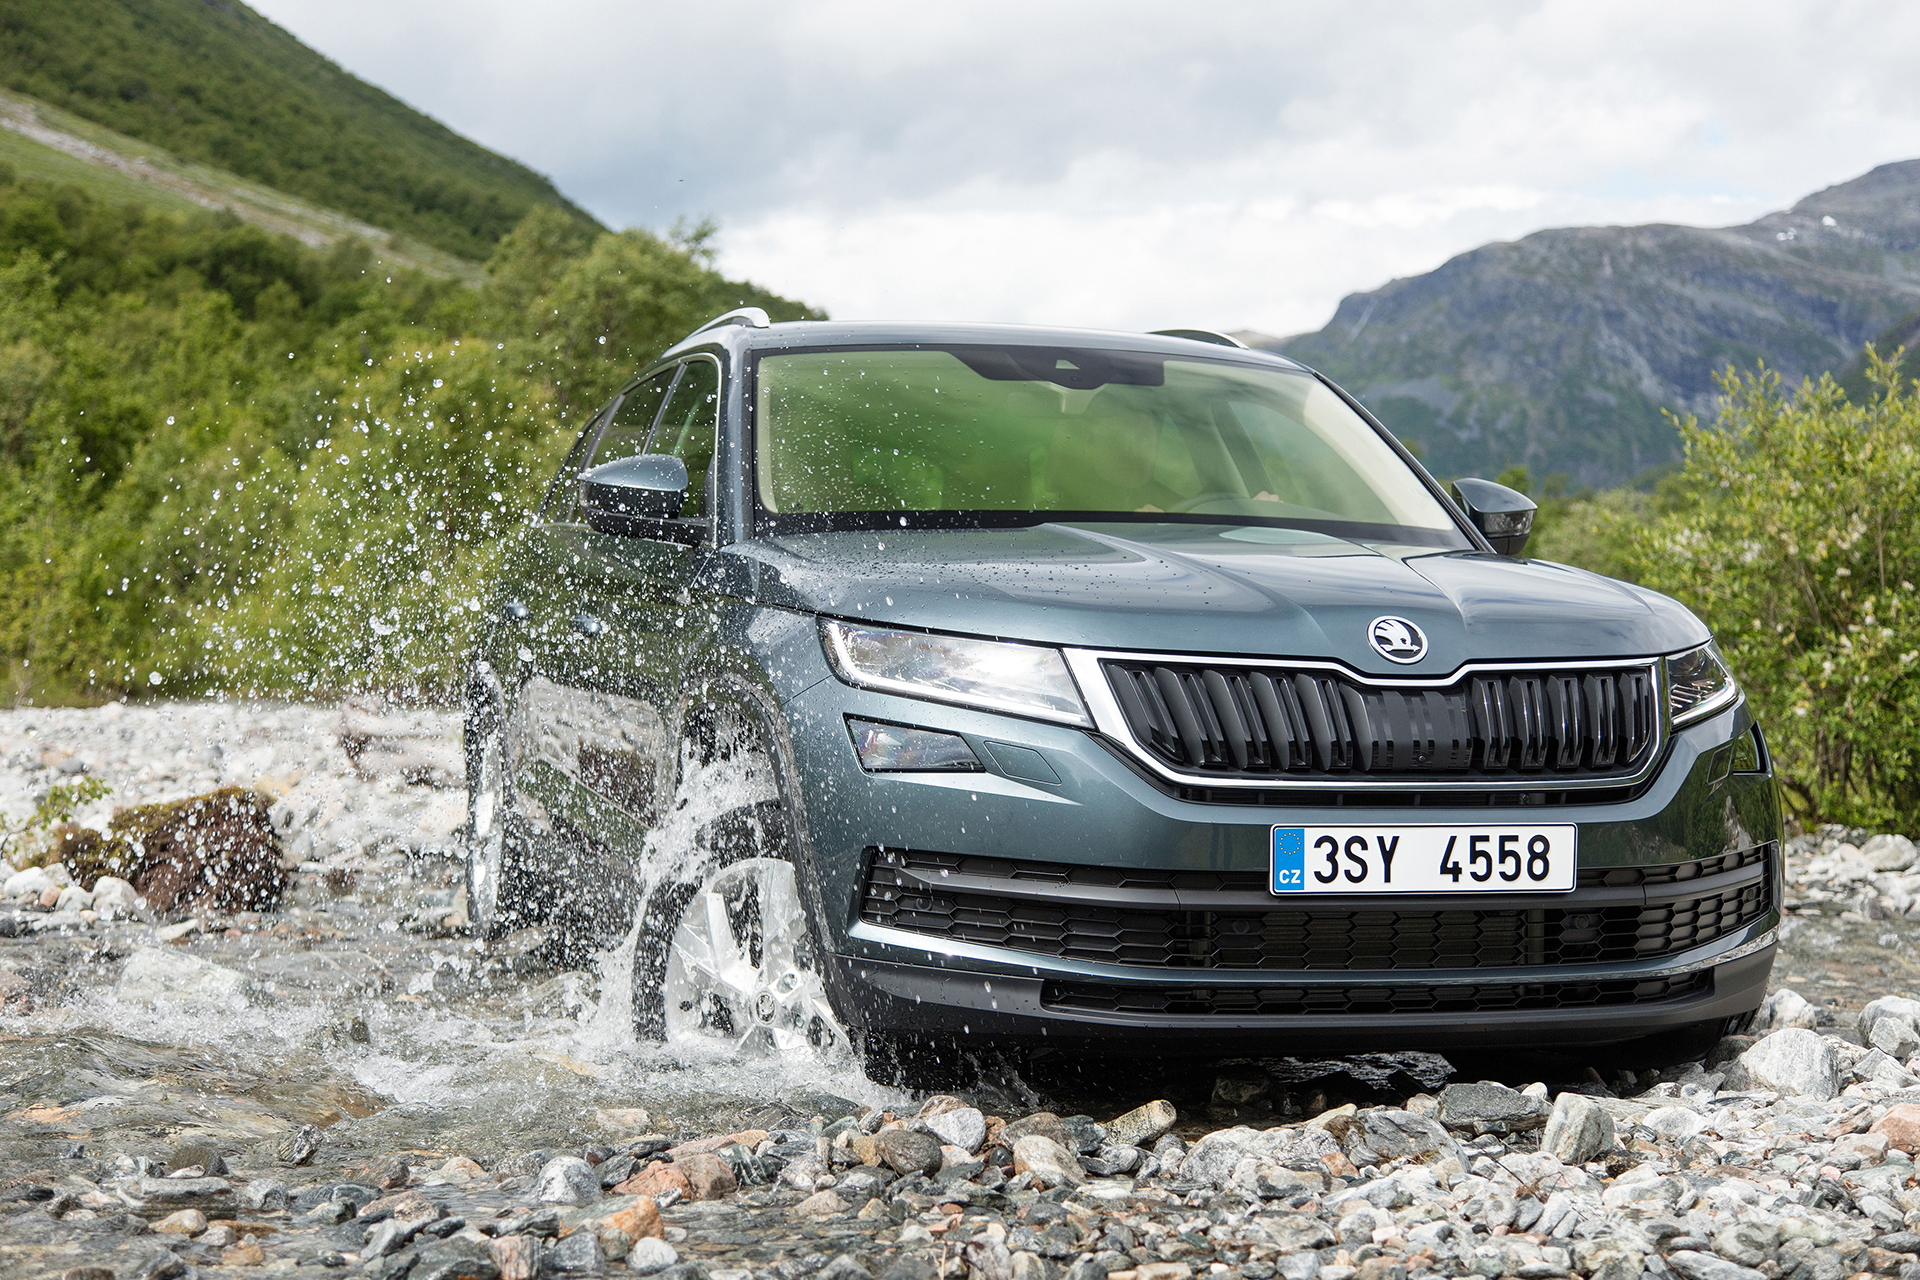 Skoda Kodiaq - 2016 - water road - photo